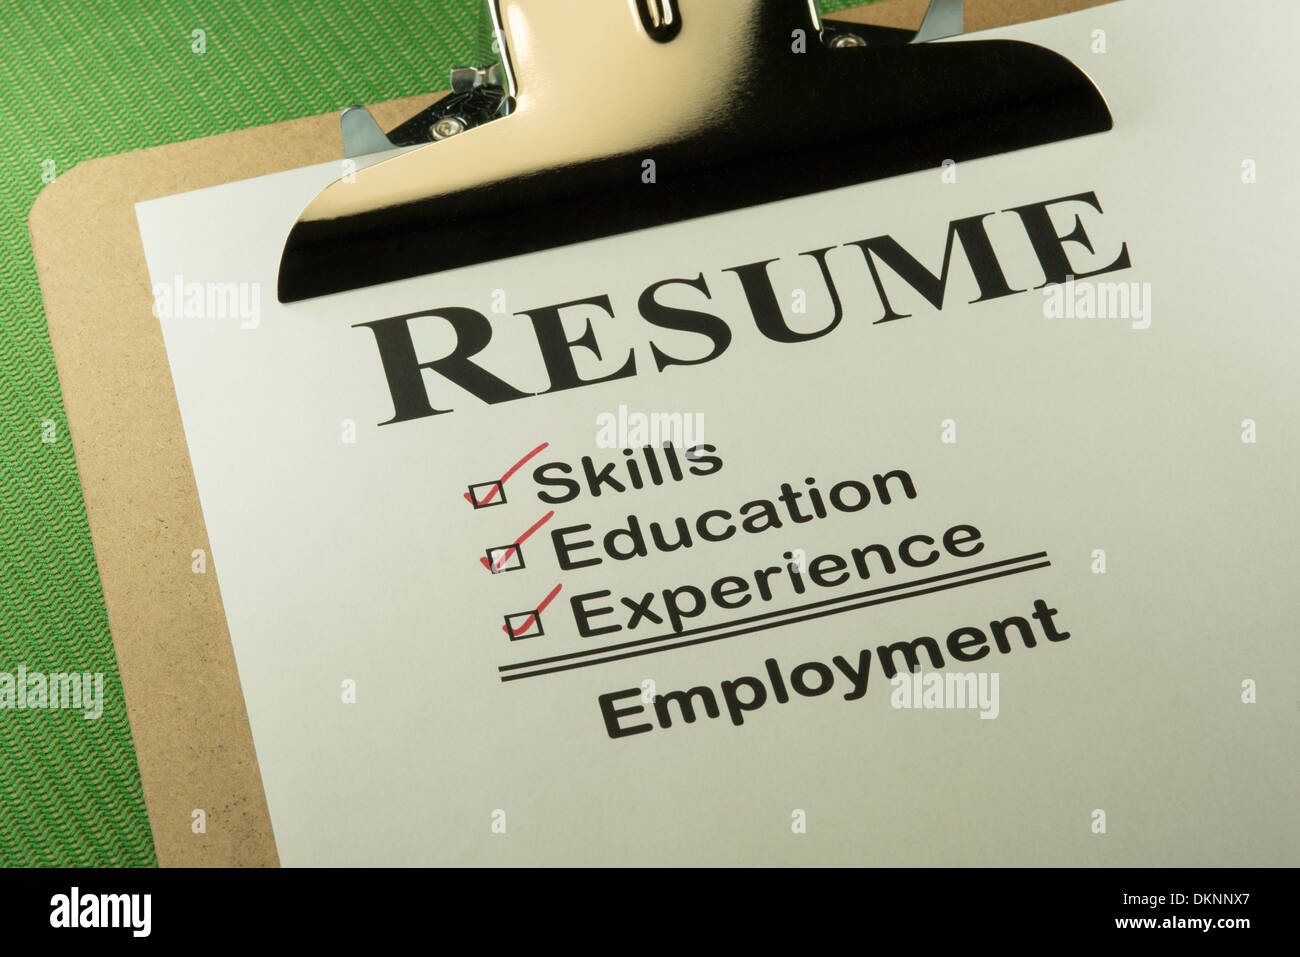 Successful Candidate Resume Requires Skills, Education And Experience To Find Employment - Stock Image